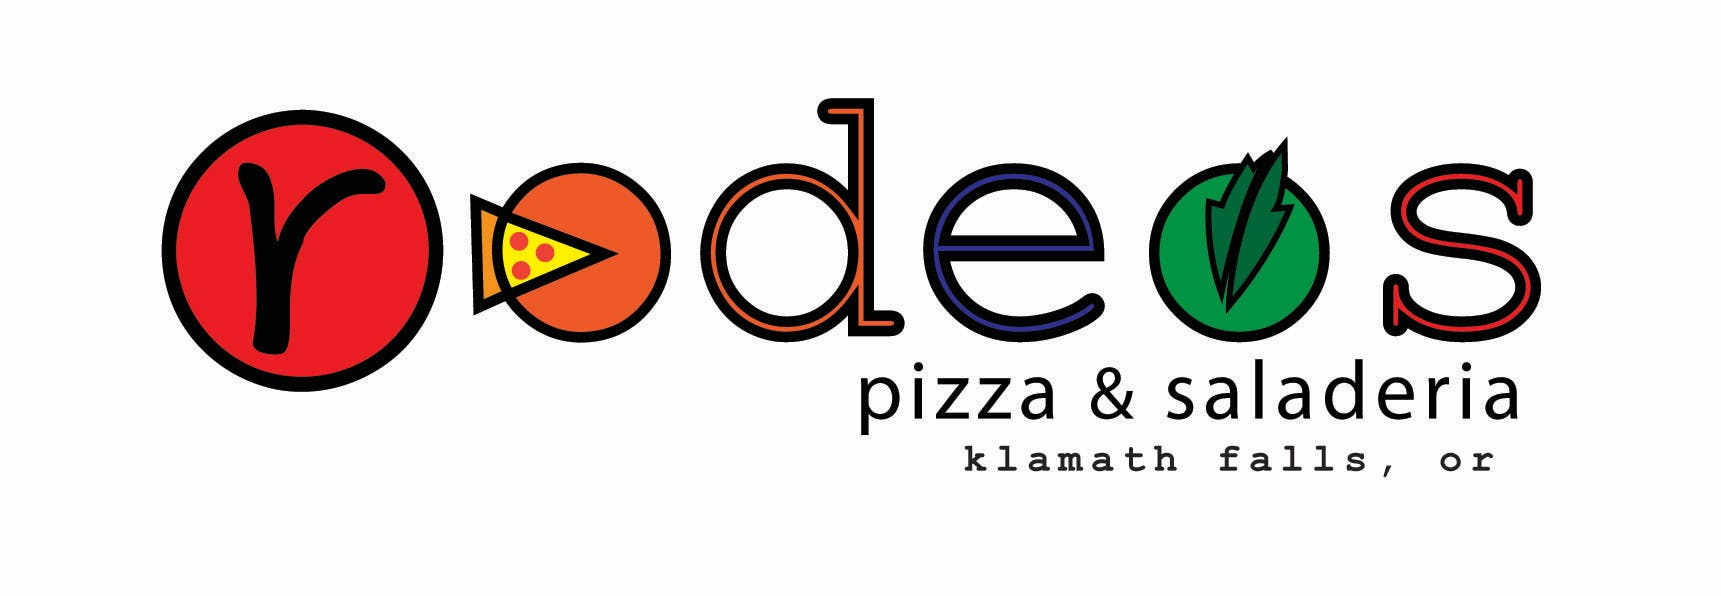 Drinks — Rodeos Pizza & Saladeria